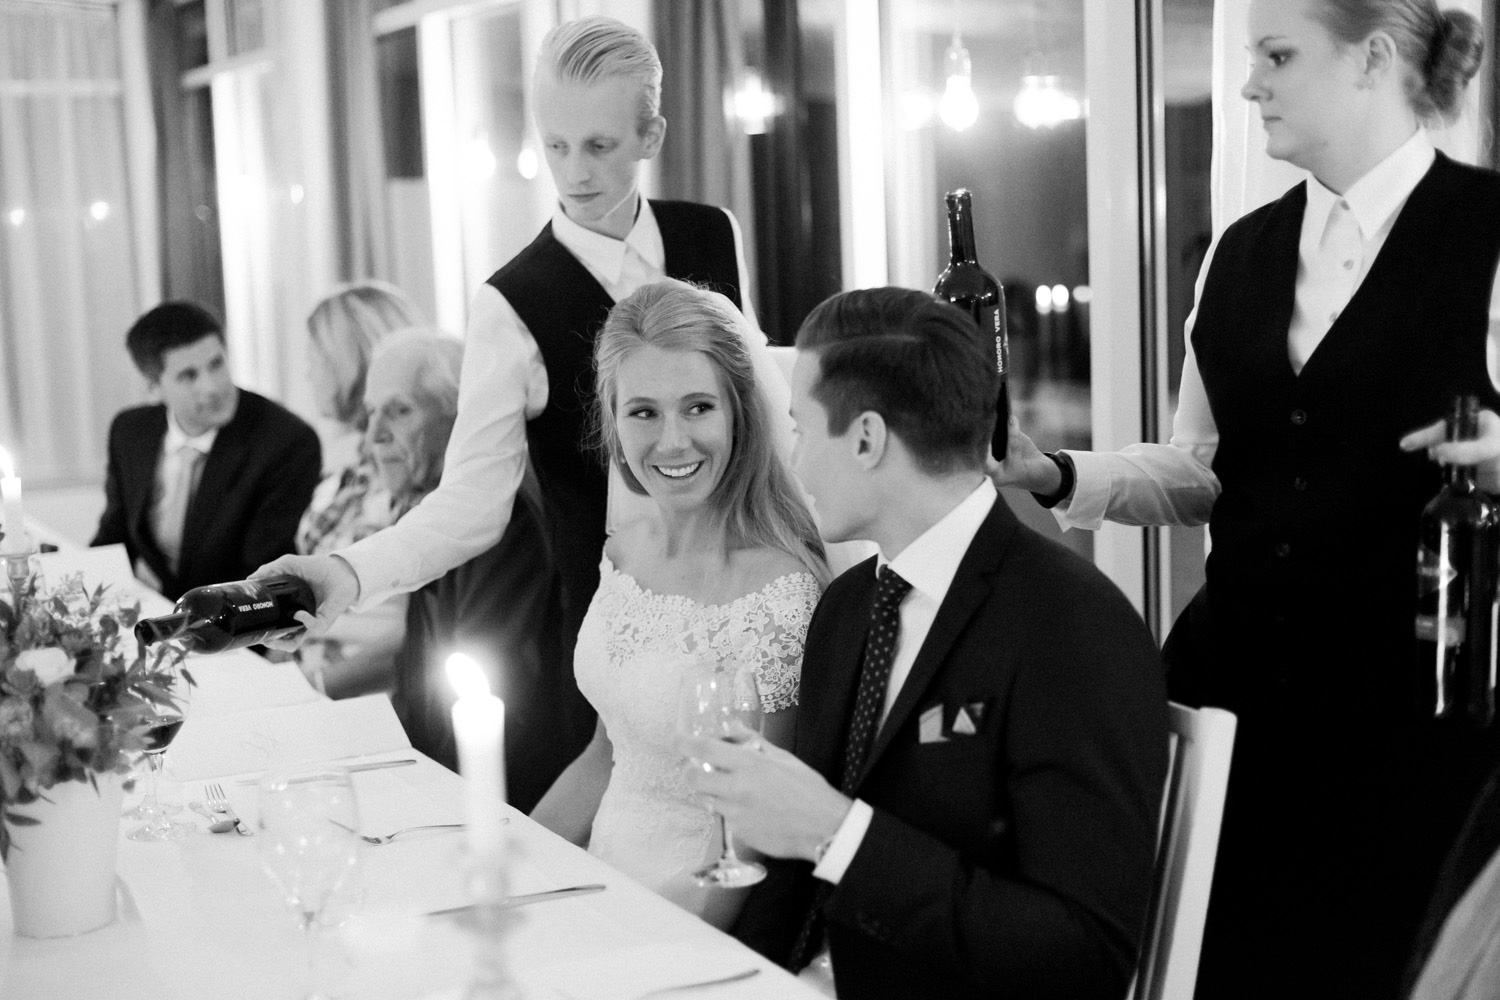 079-sweden-vidbynäs-wedding-photographer-bröllopsfotograf.jpg